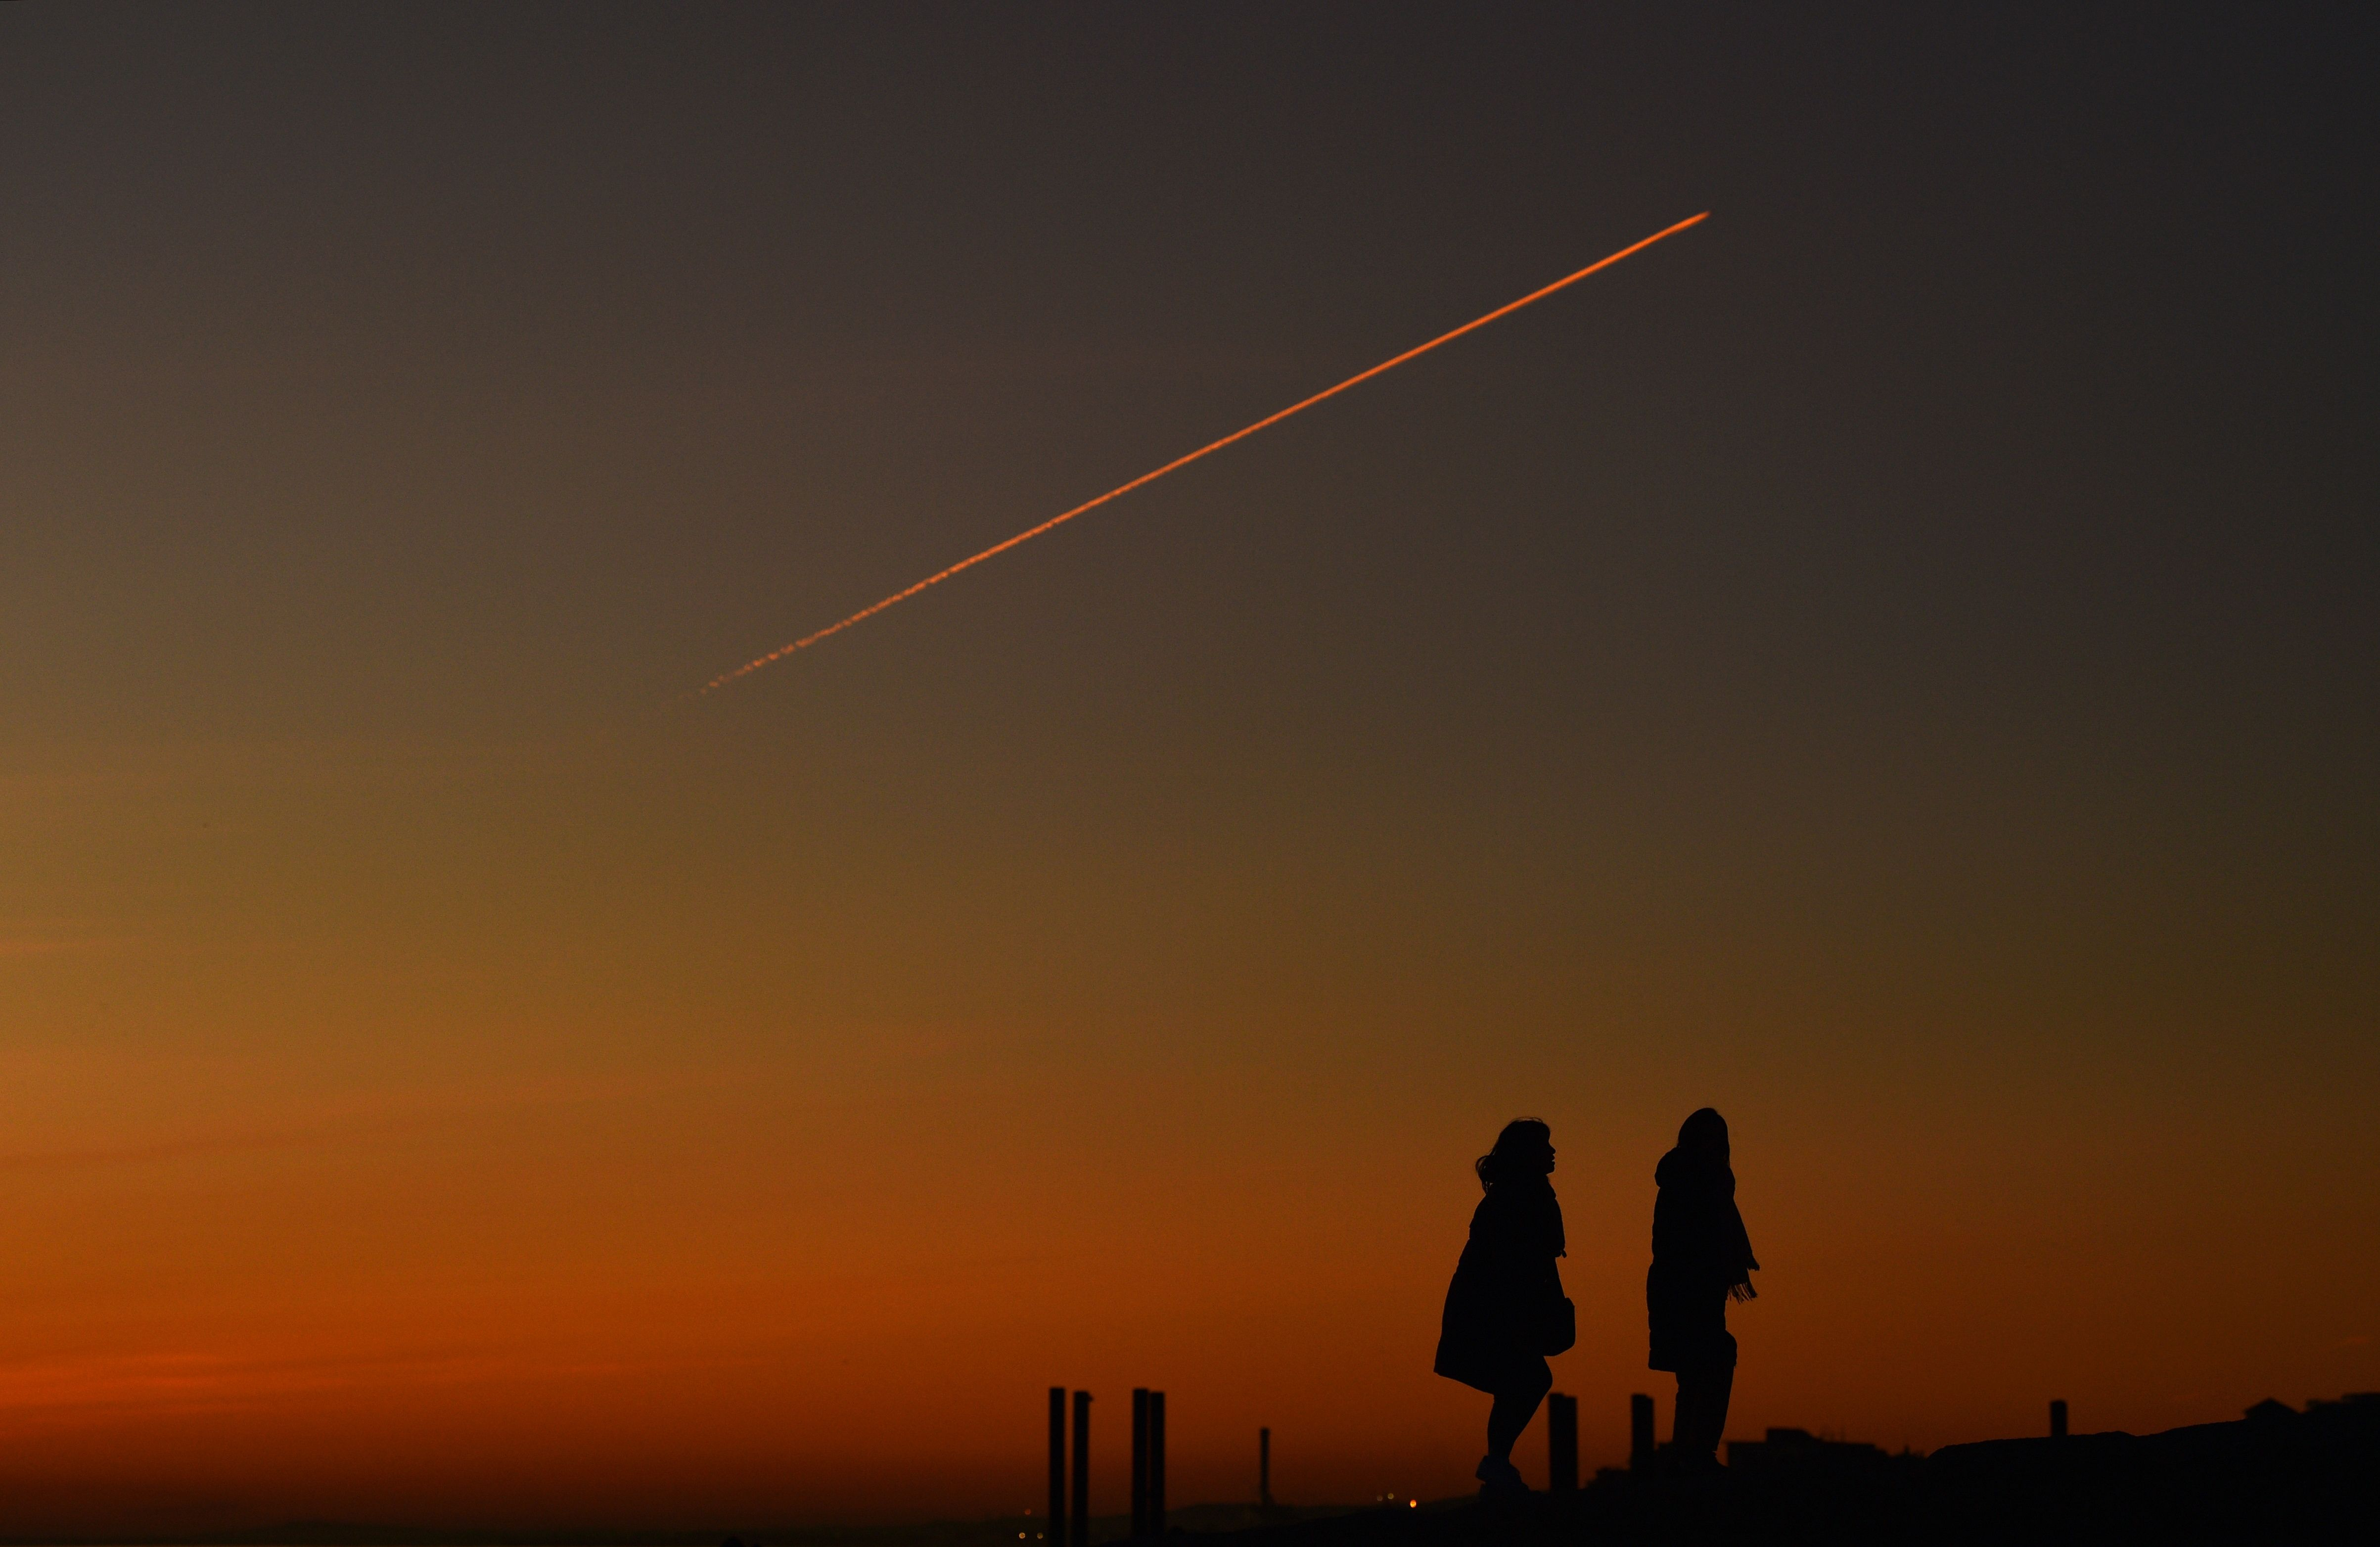 contrails or meteors